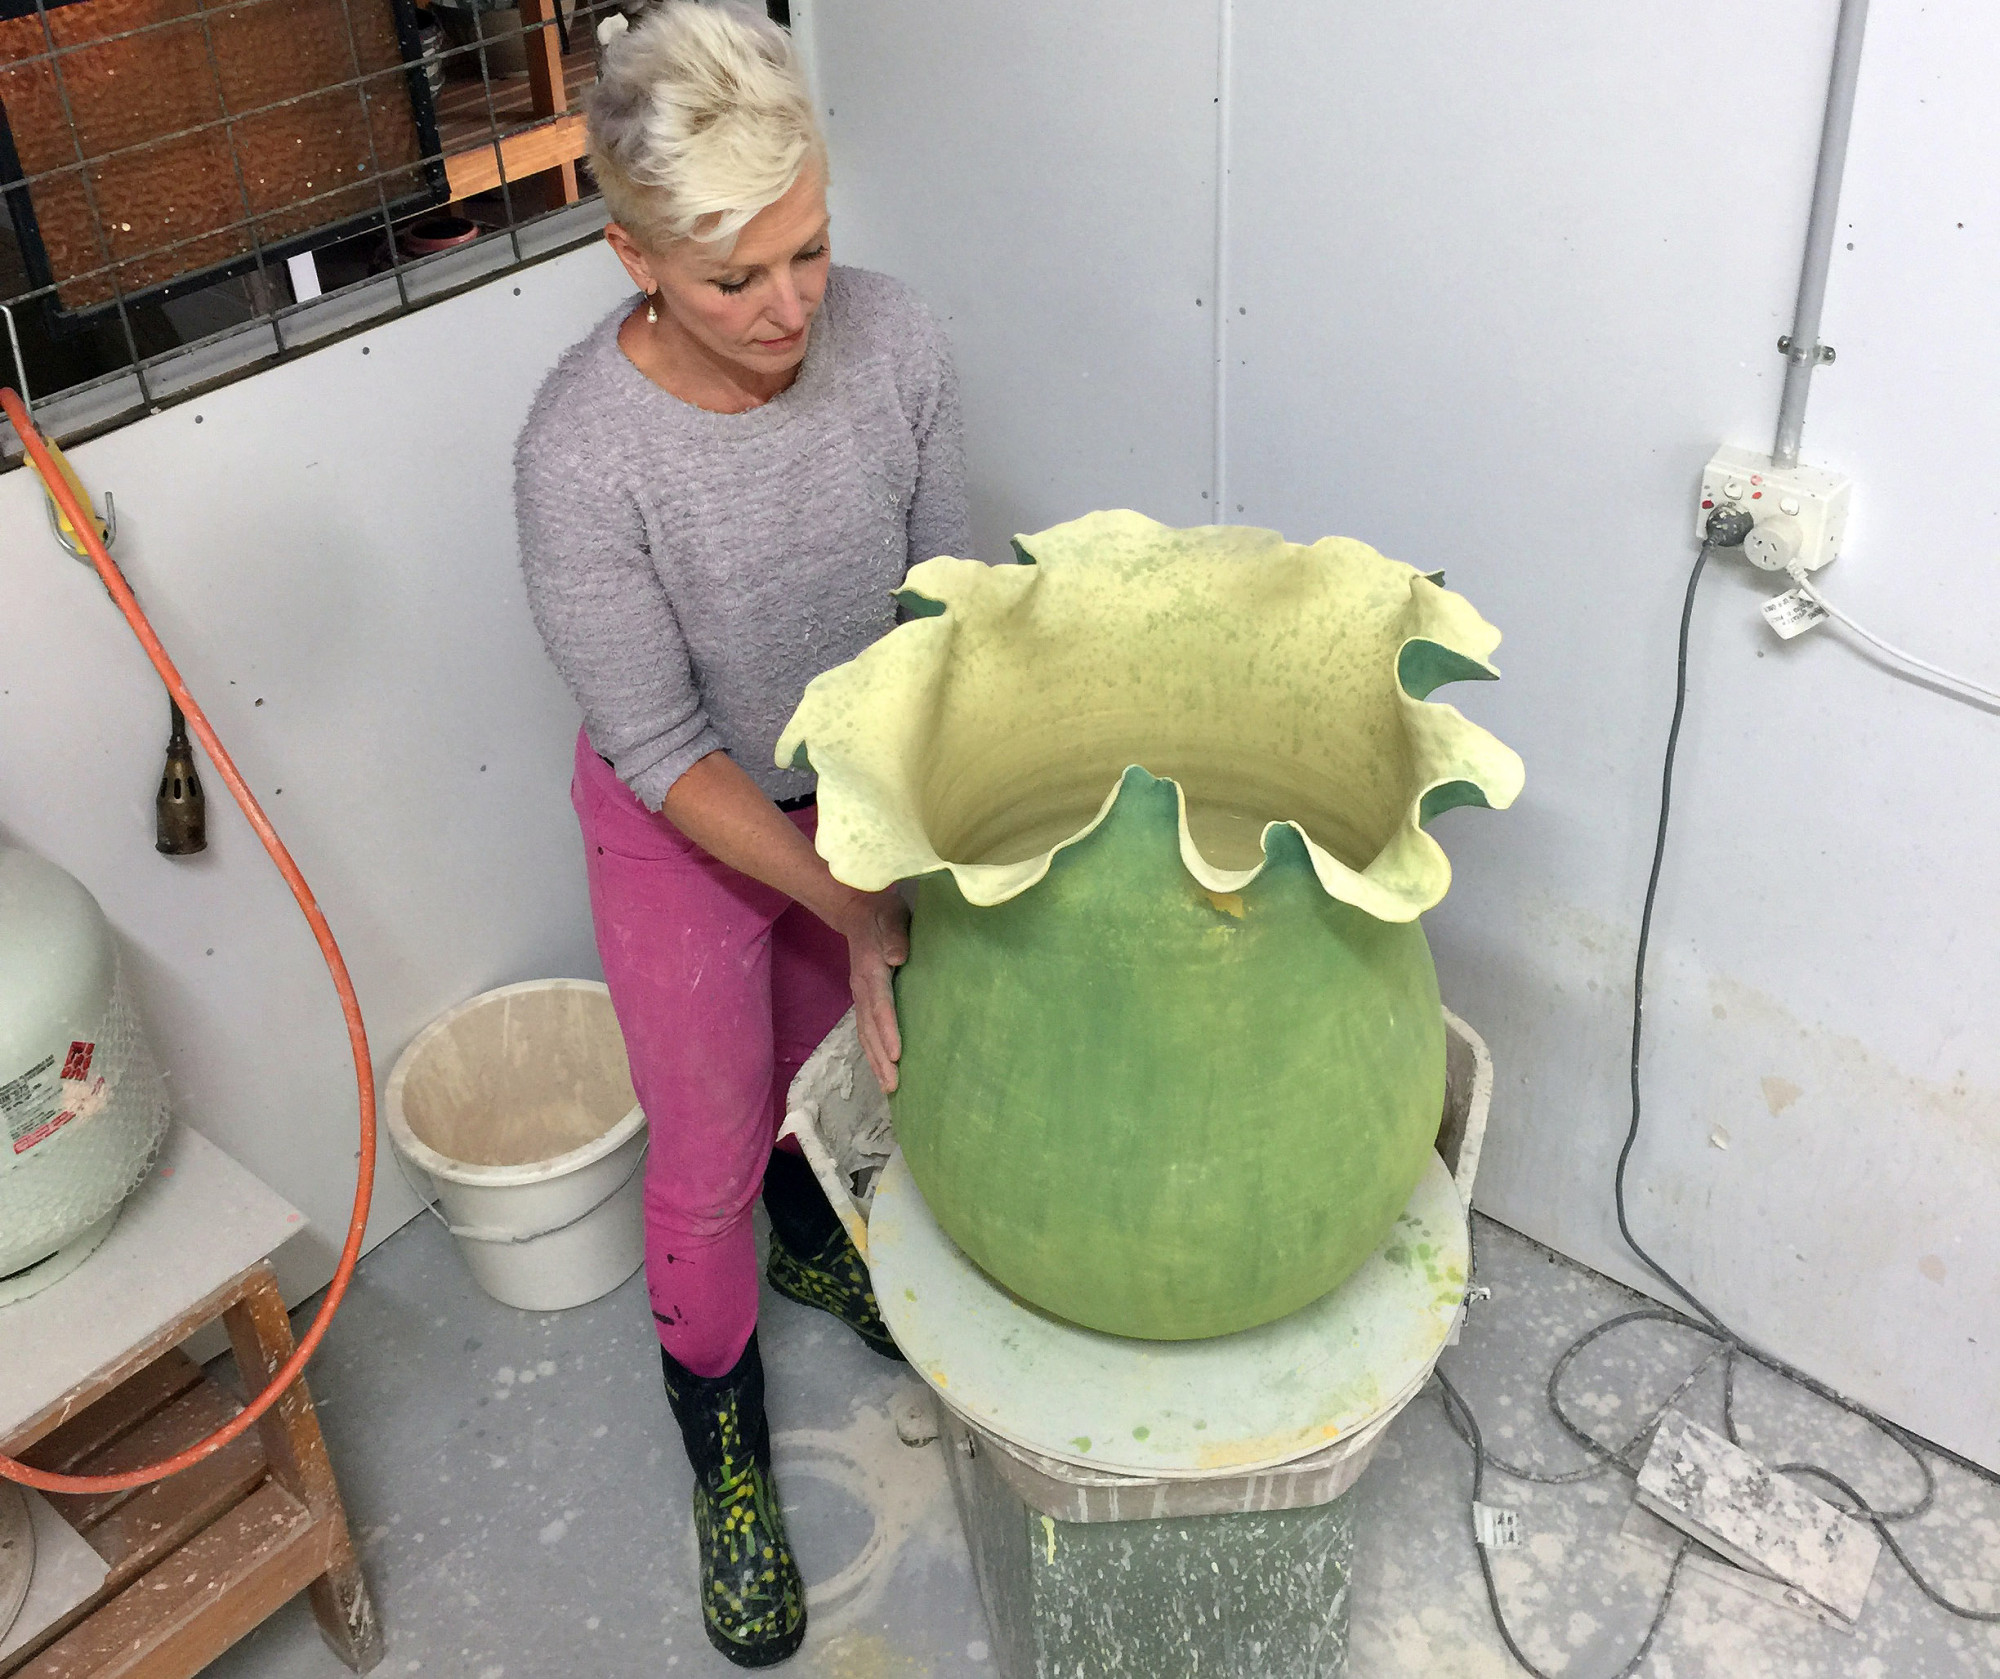 Kerrie Warren_In the Studio with a Work in Progress_WebRes